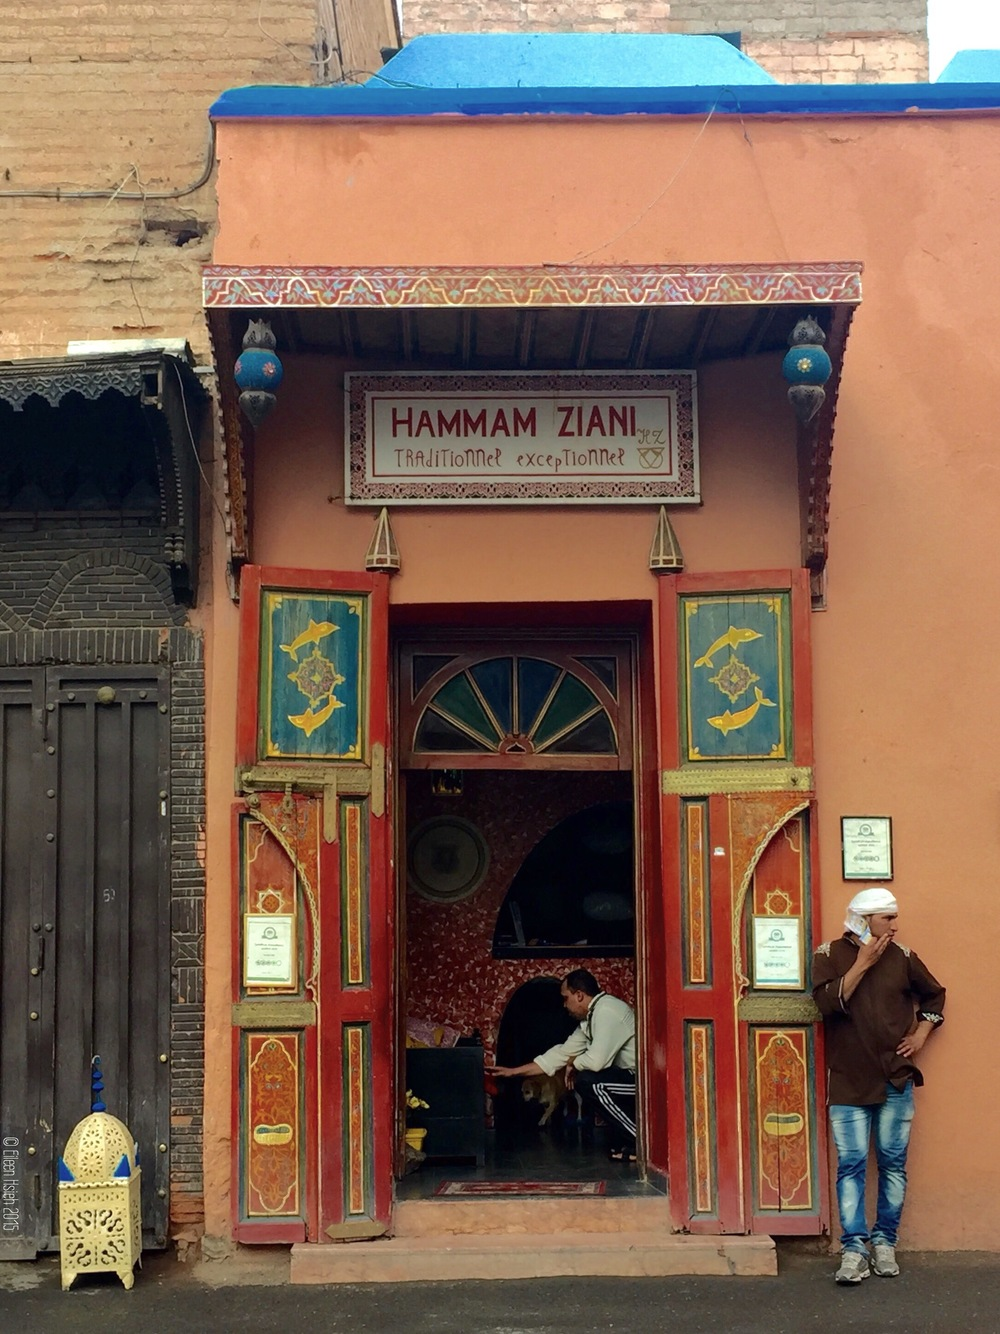 Entrance of a traditional Moroccan hammam bath house, where you can get the most thorough body scrub and come out shiny and new. 摩洛哥傳統澡堂的入口,進去被刮掉一層皮後(其實是汙垢啦),保證出來全身亮晶晶。